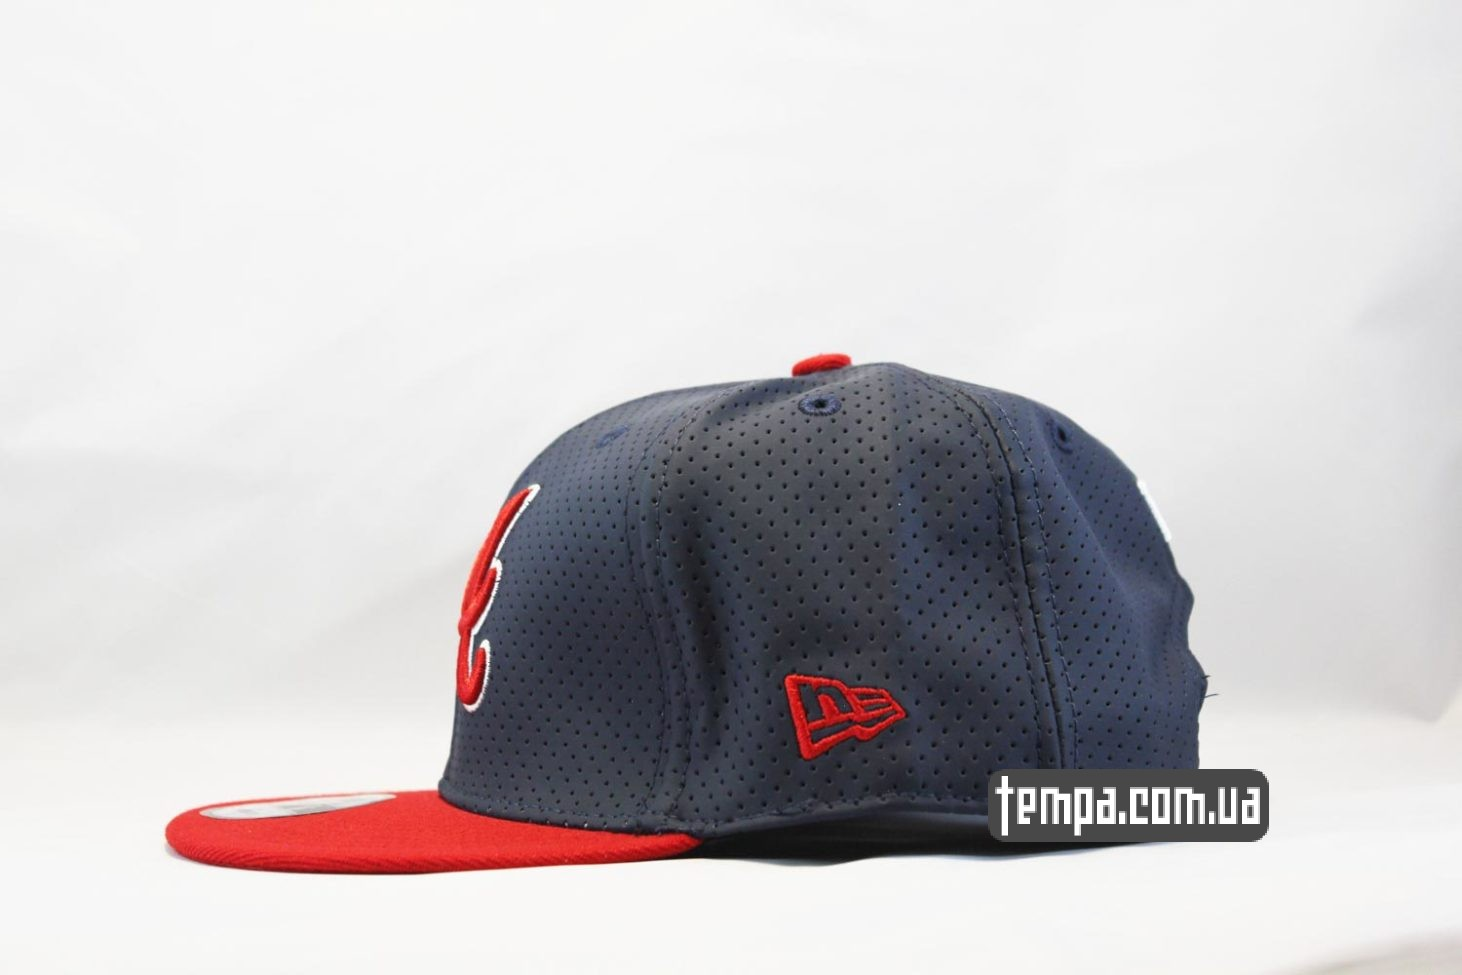 магазин NEWERA украина кепка snapback atlanta braves trucker NEW ERA с сеткой